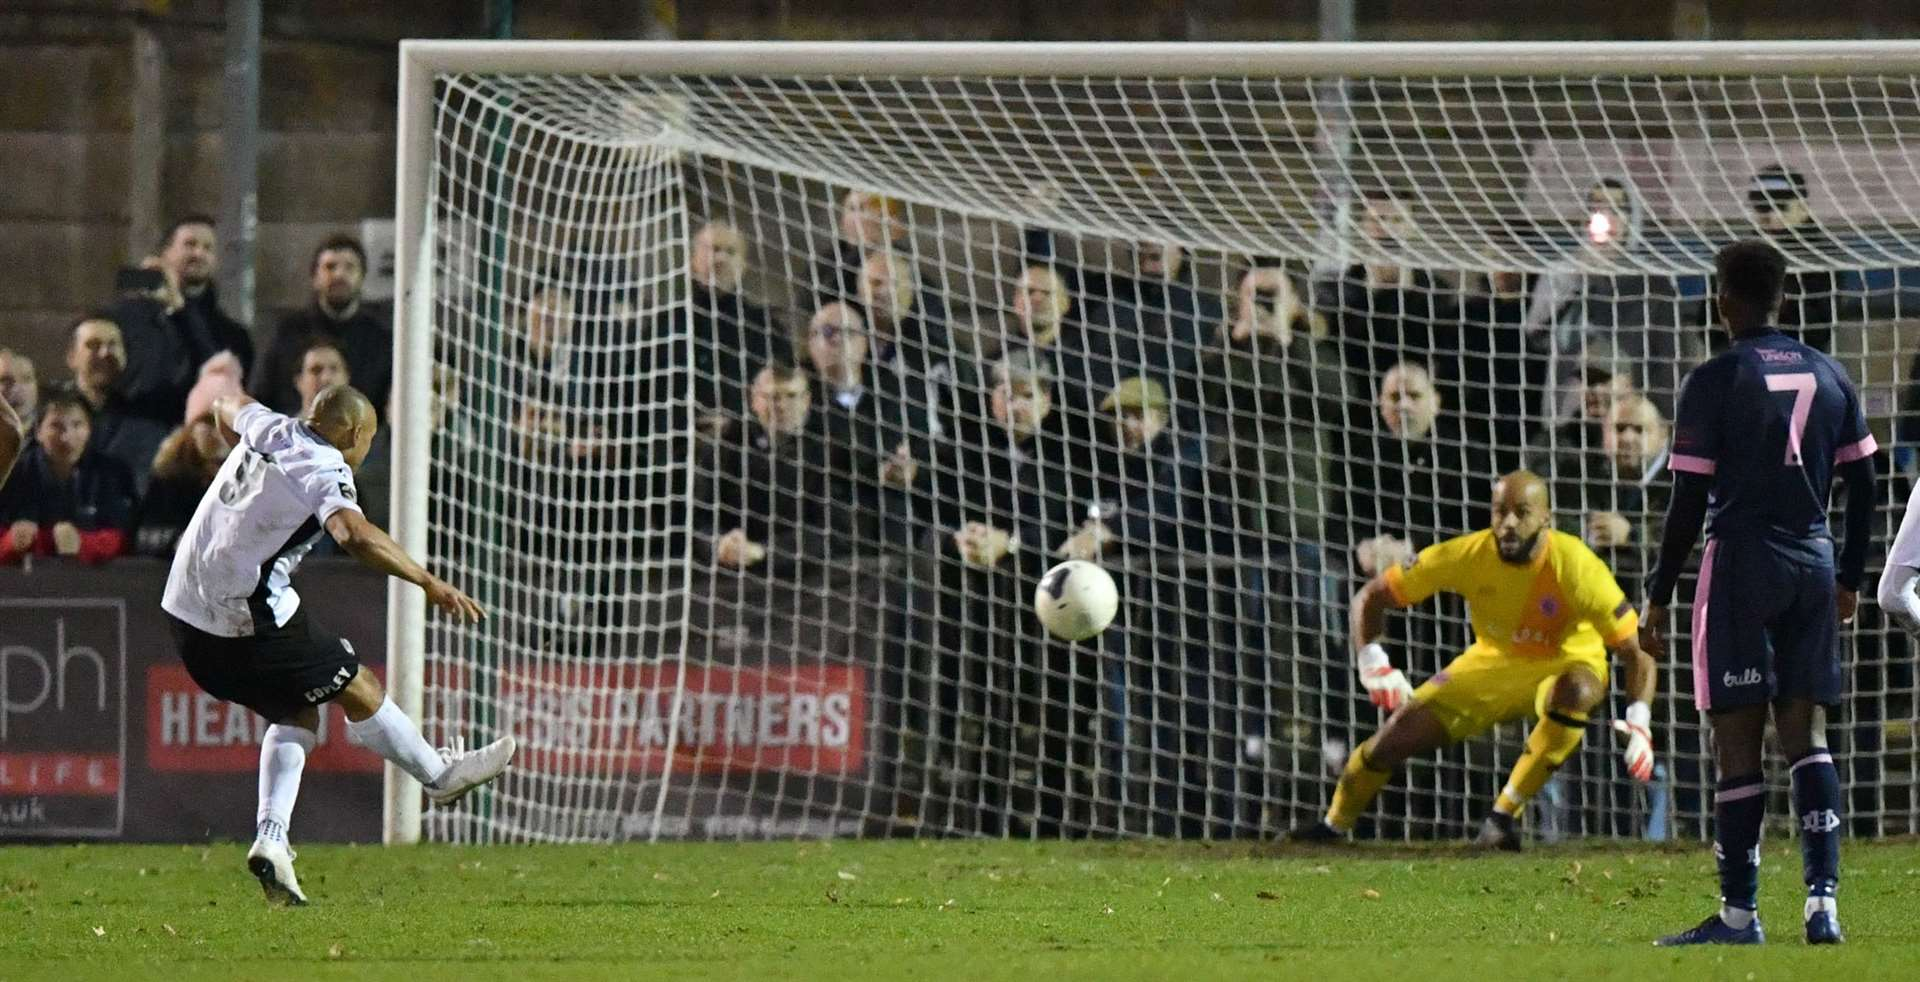 Elliott Romain converts from the penalty spot for Dartford at Dulwich. Picture: Keith Gillard